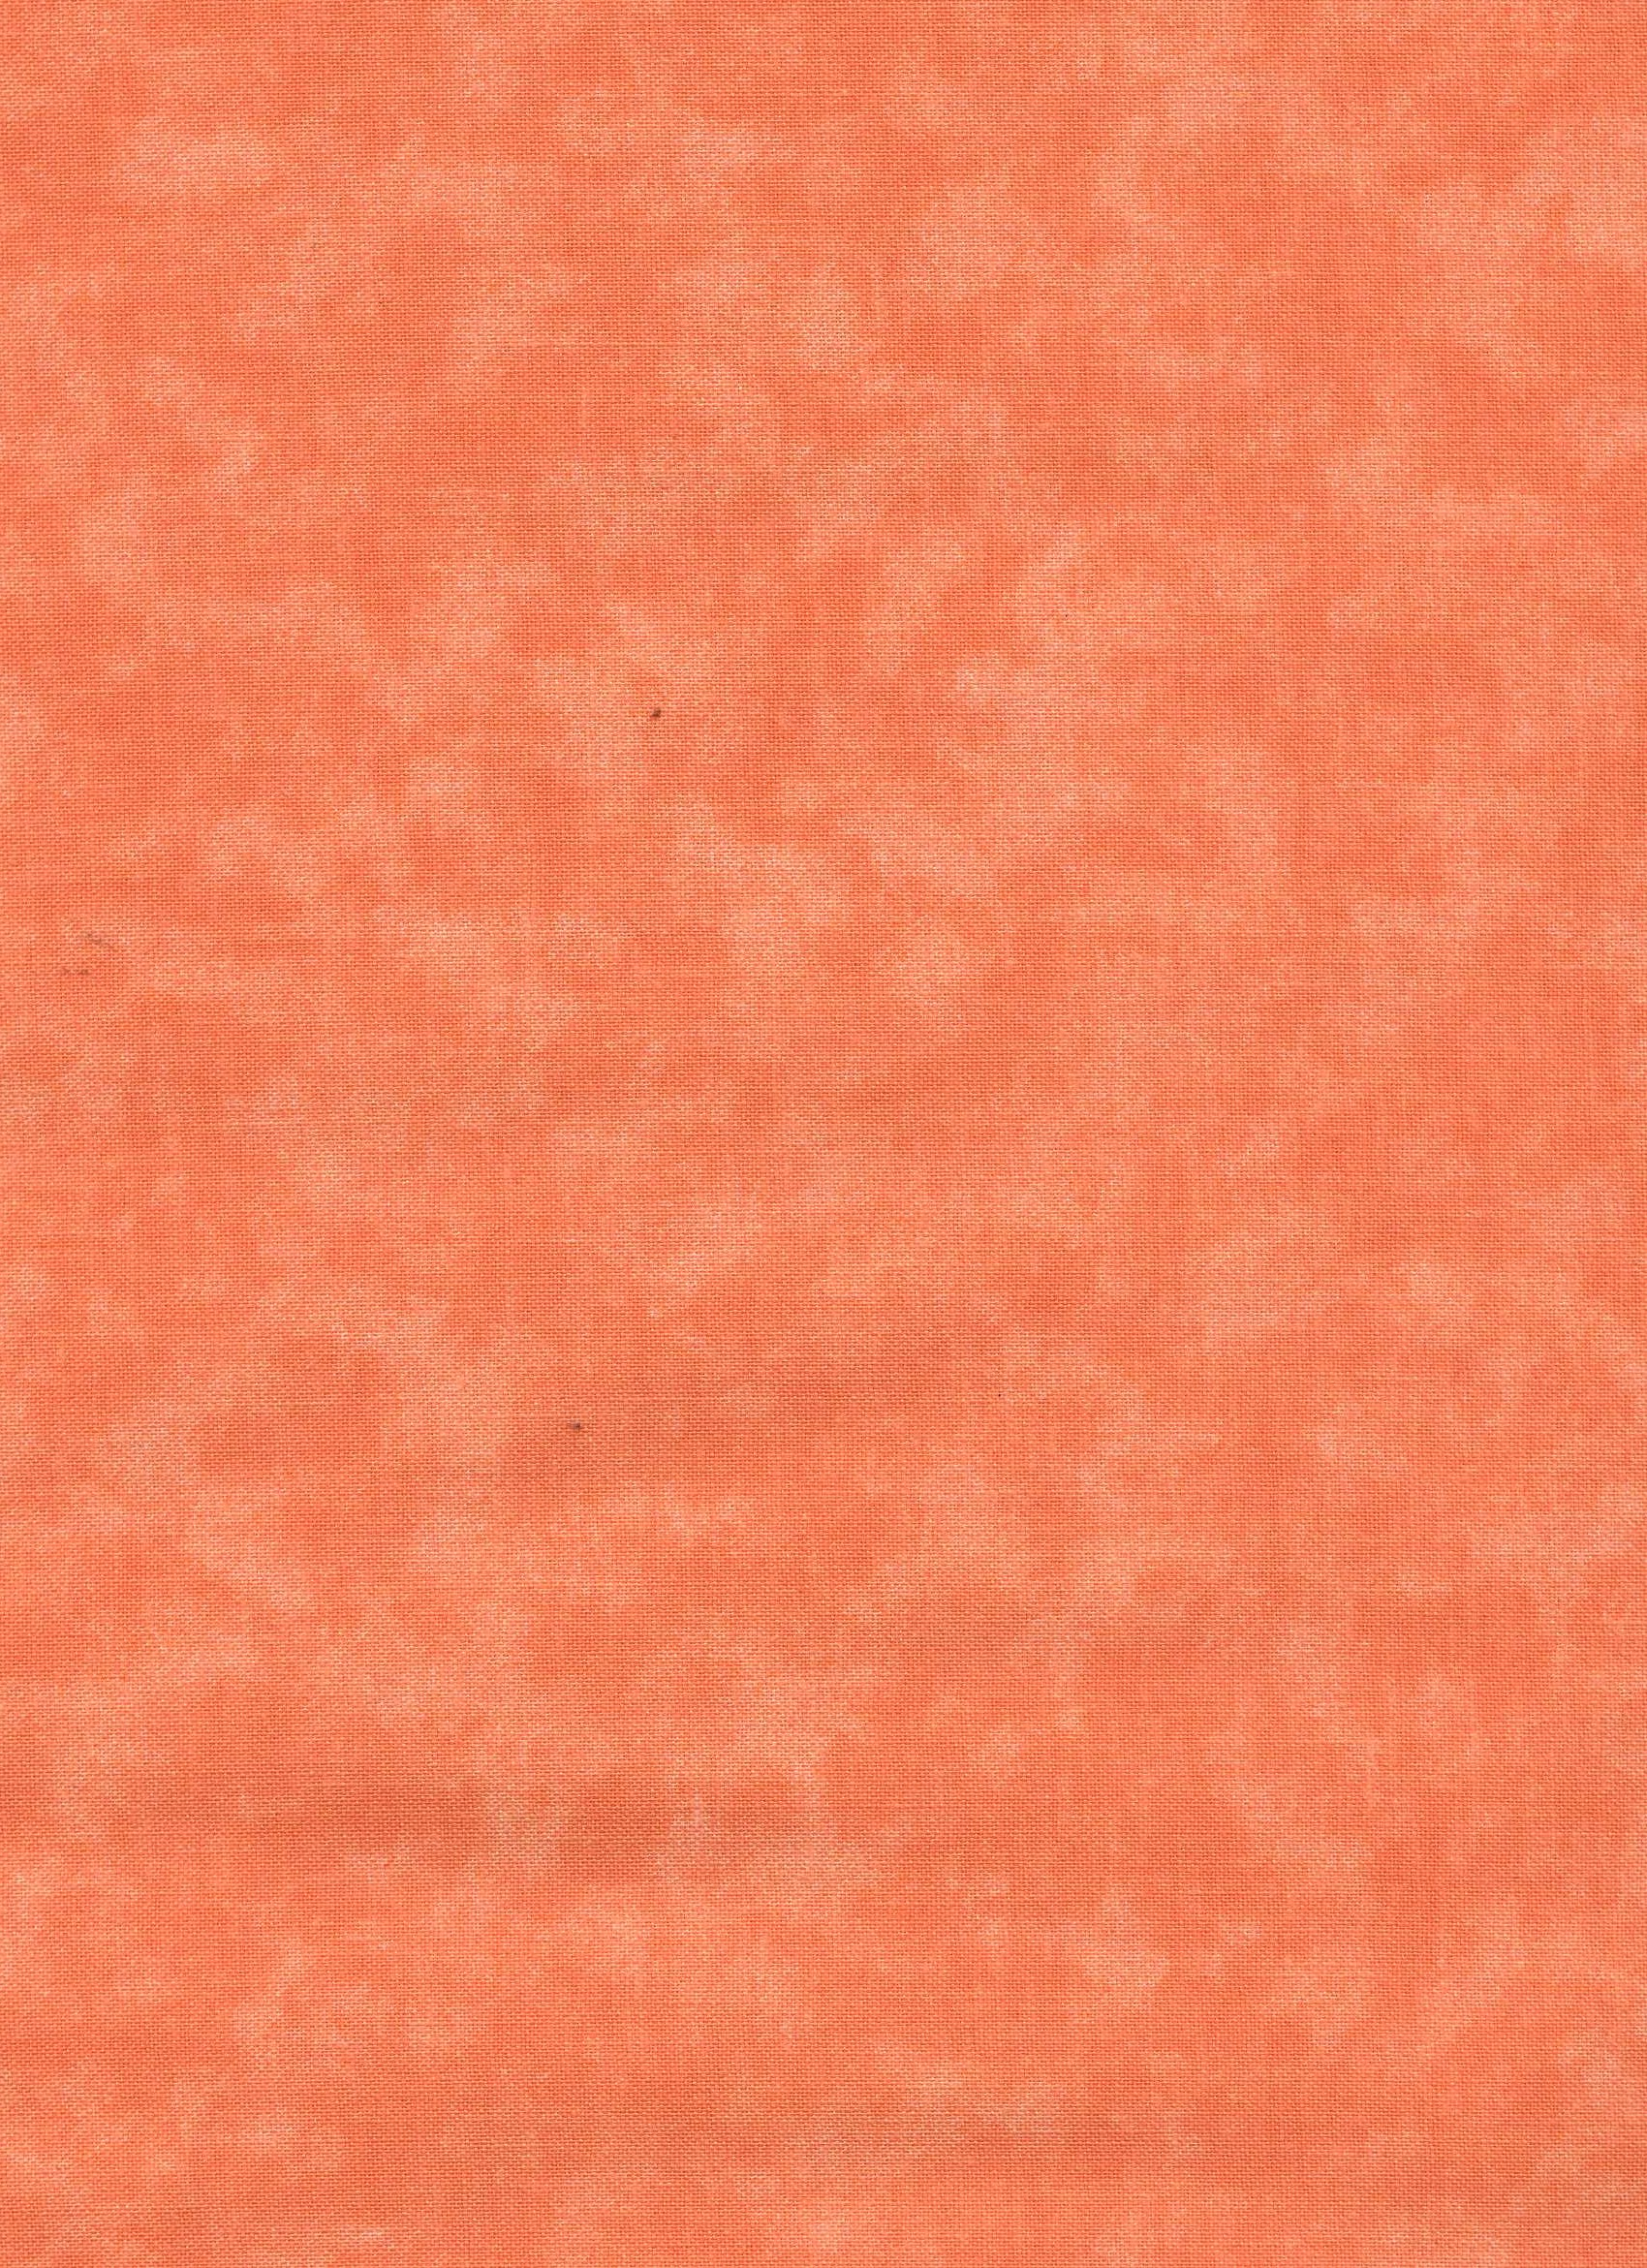 Peach Marbleized Solid